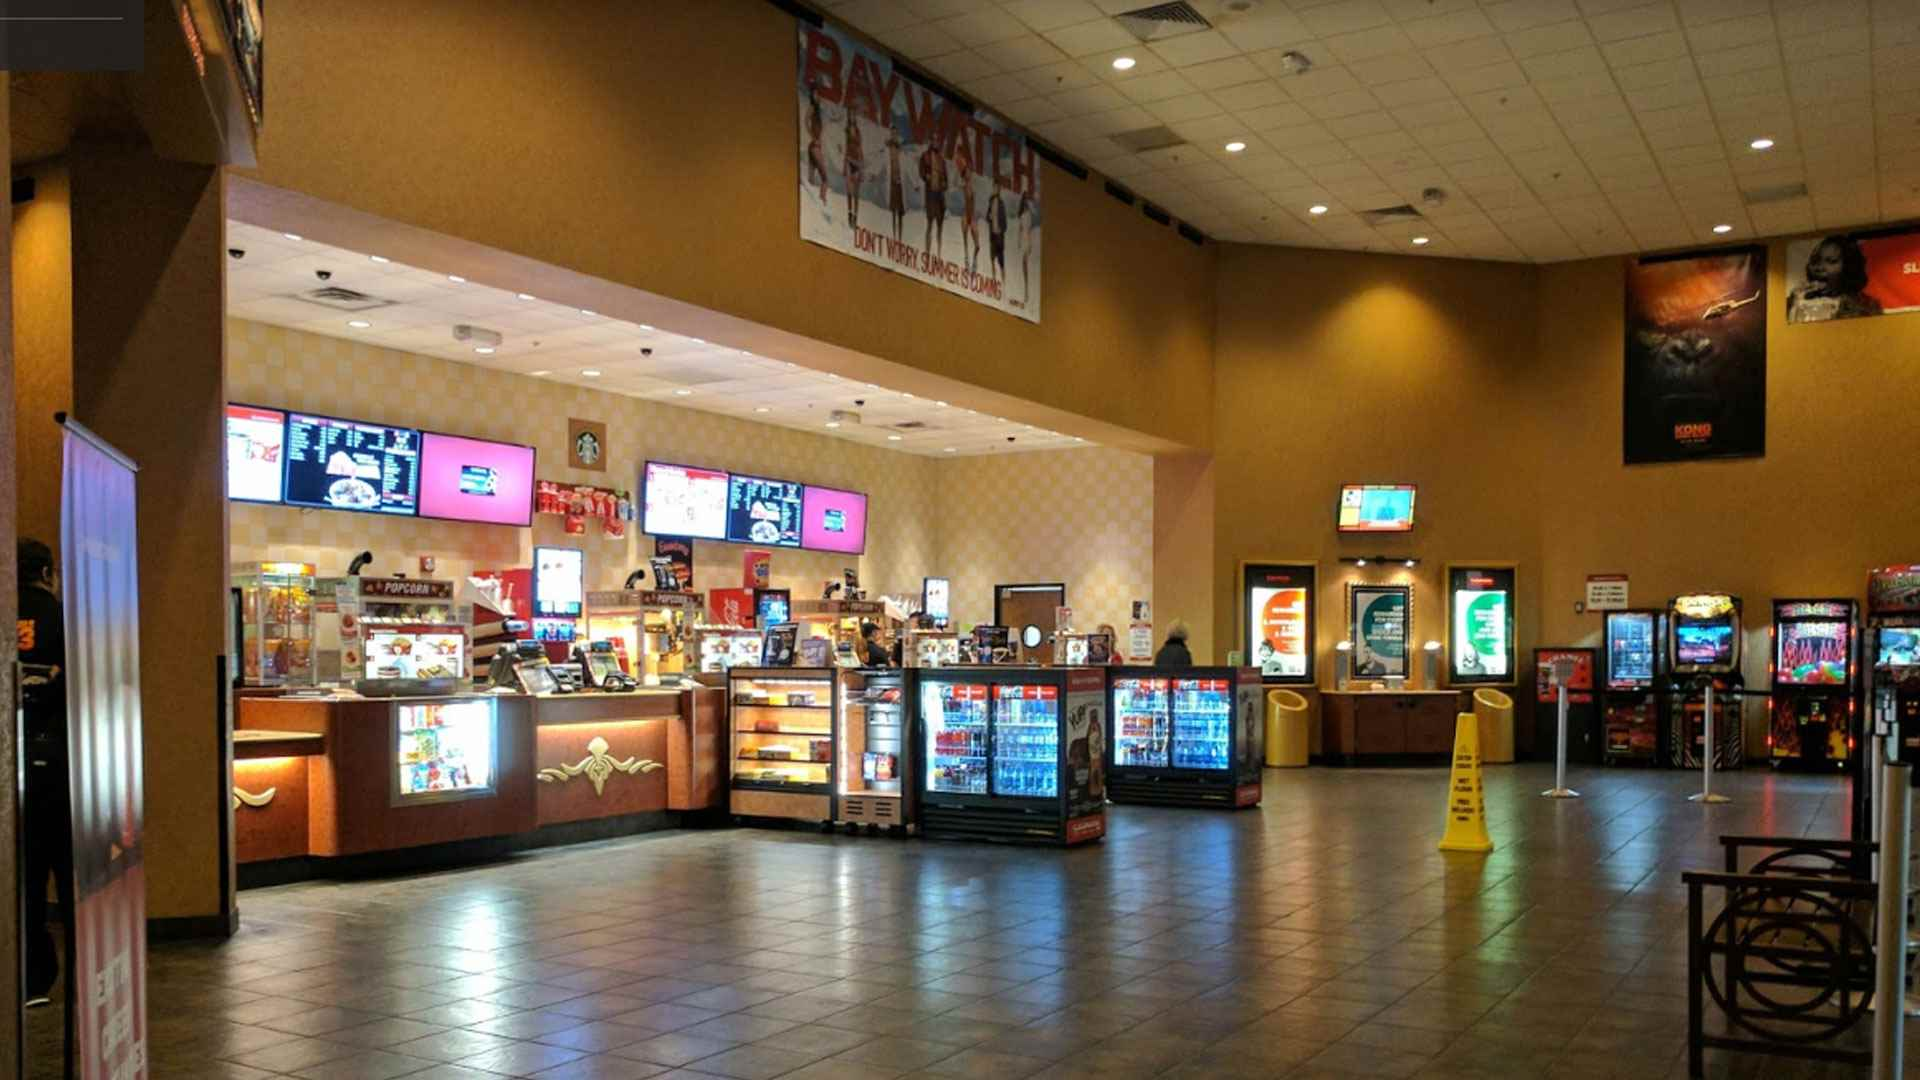 Cinemark Movies